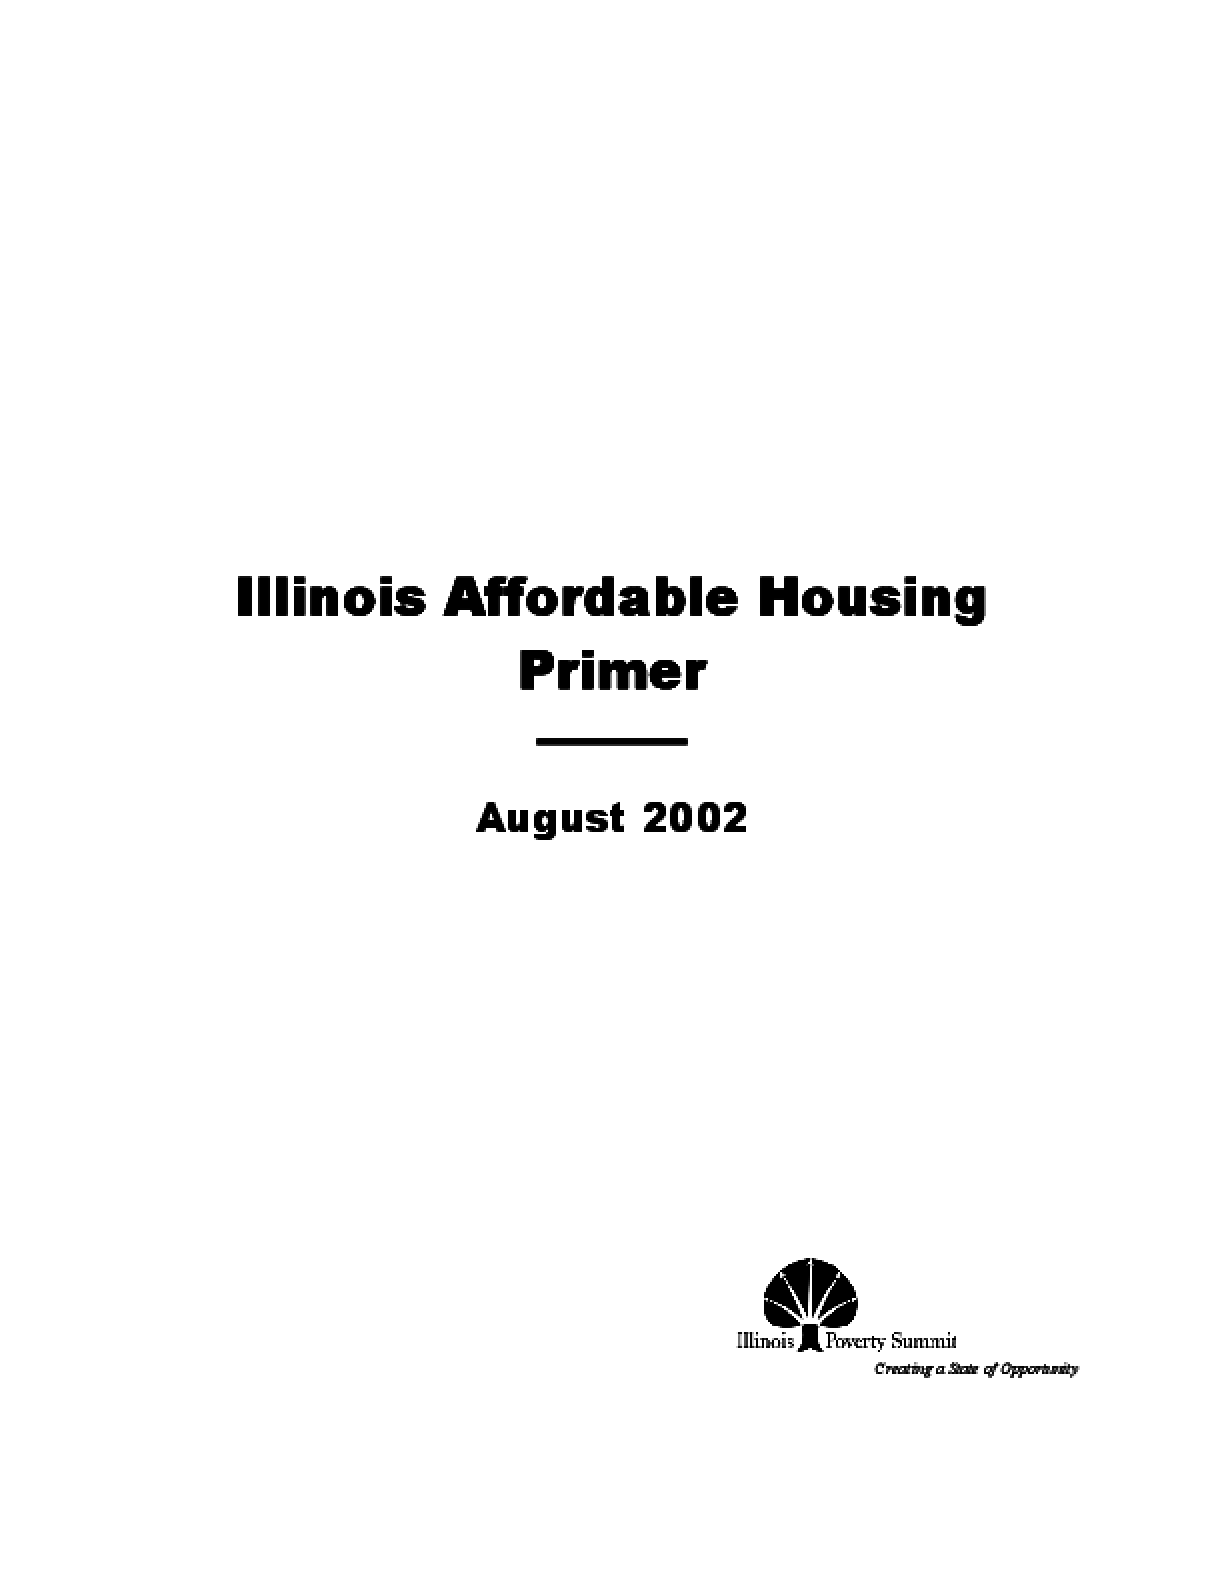 Illinois Affordable Housing Primer